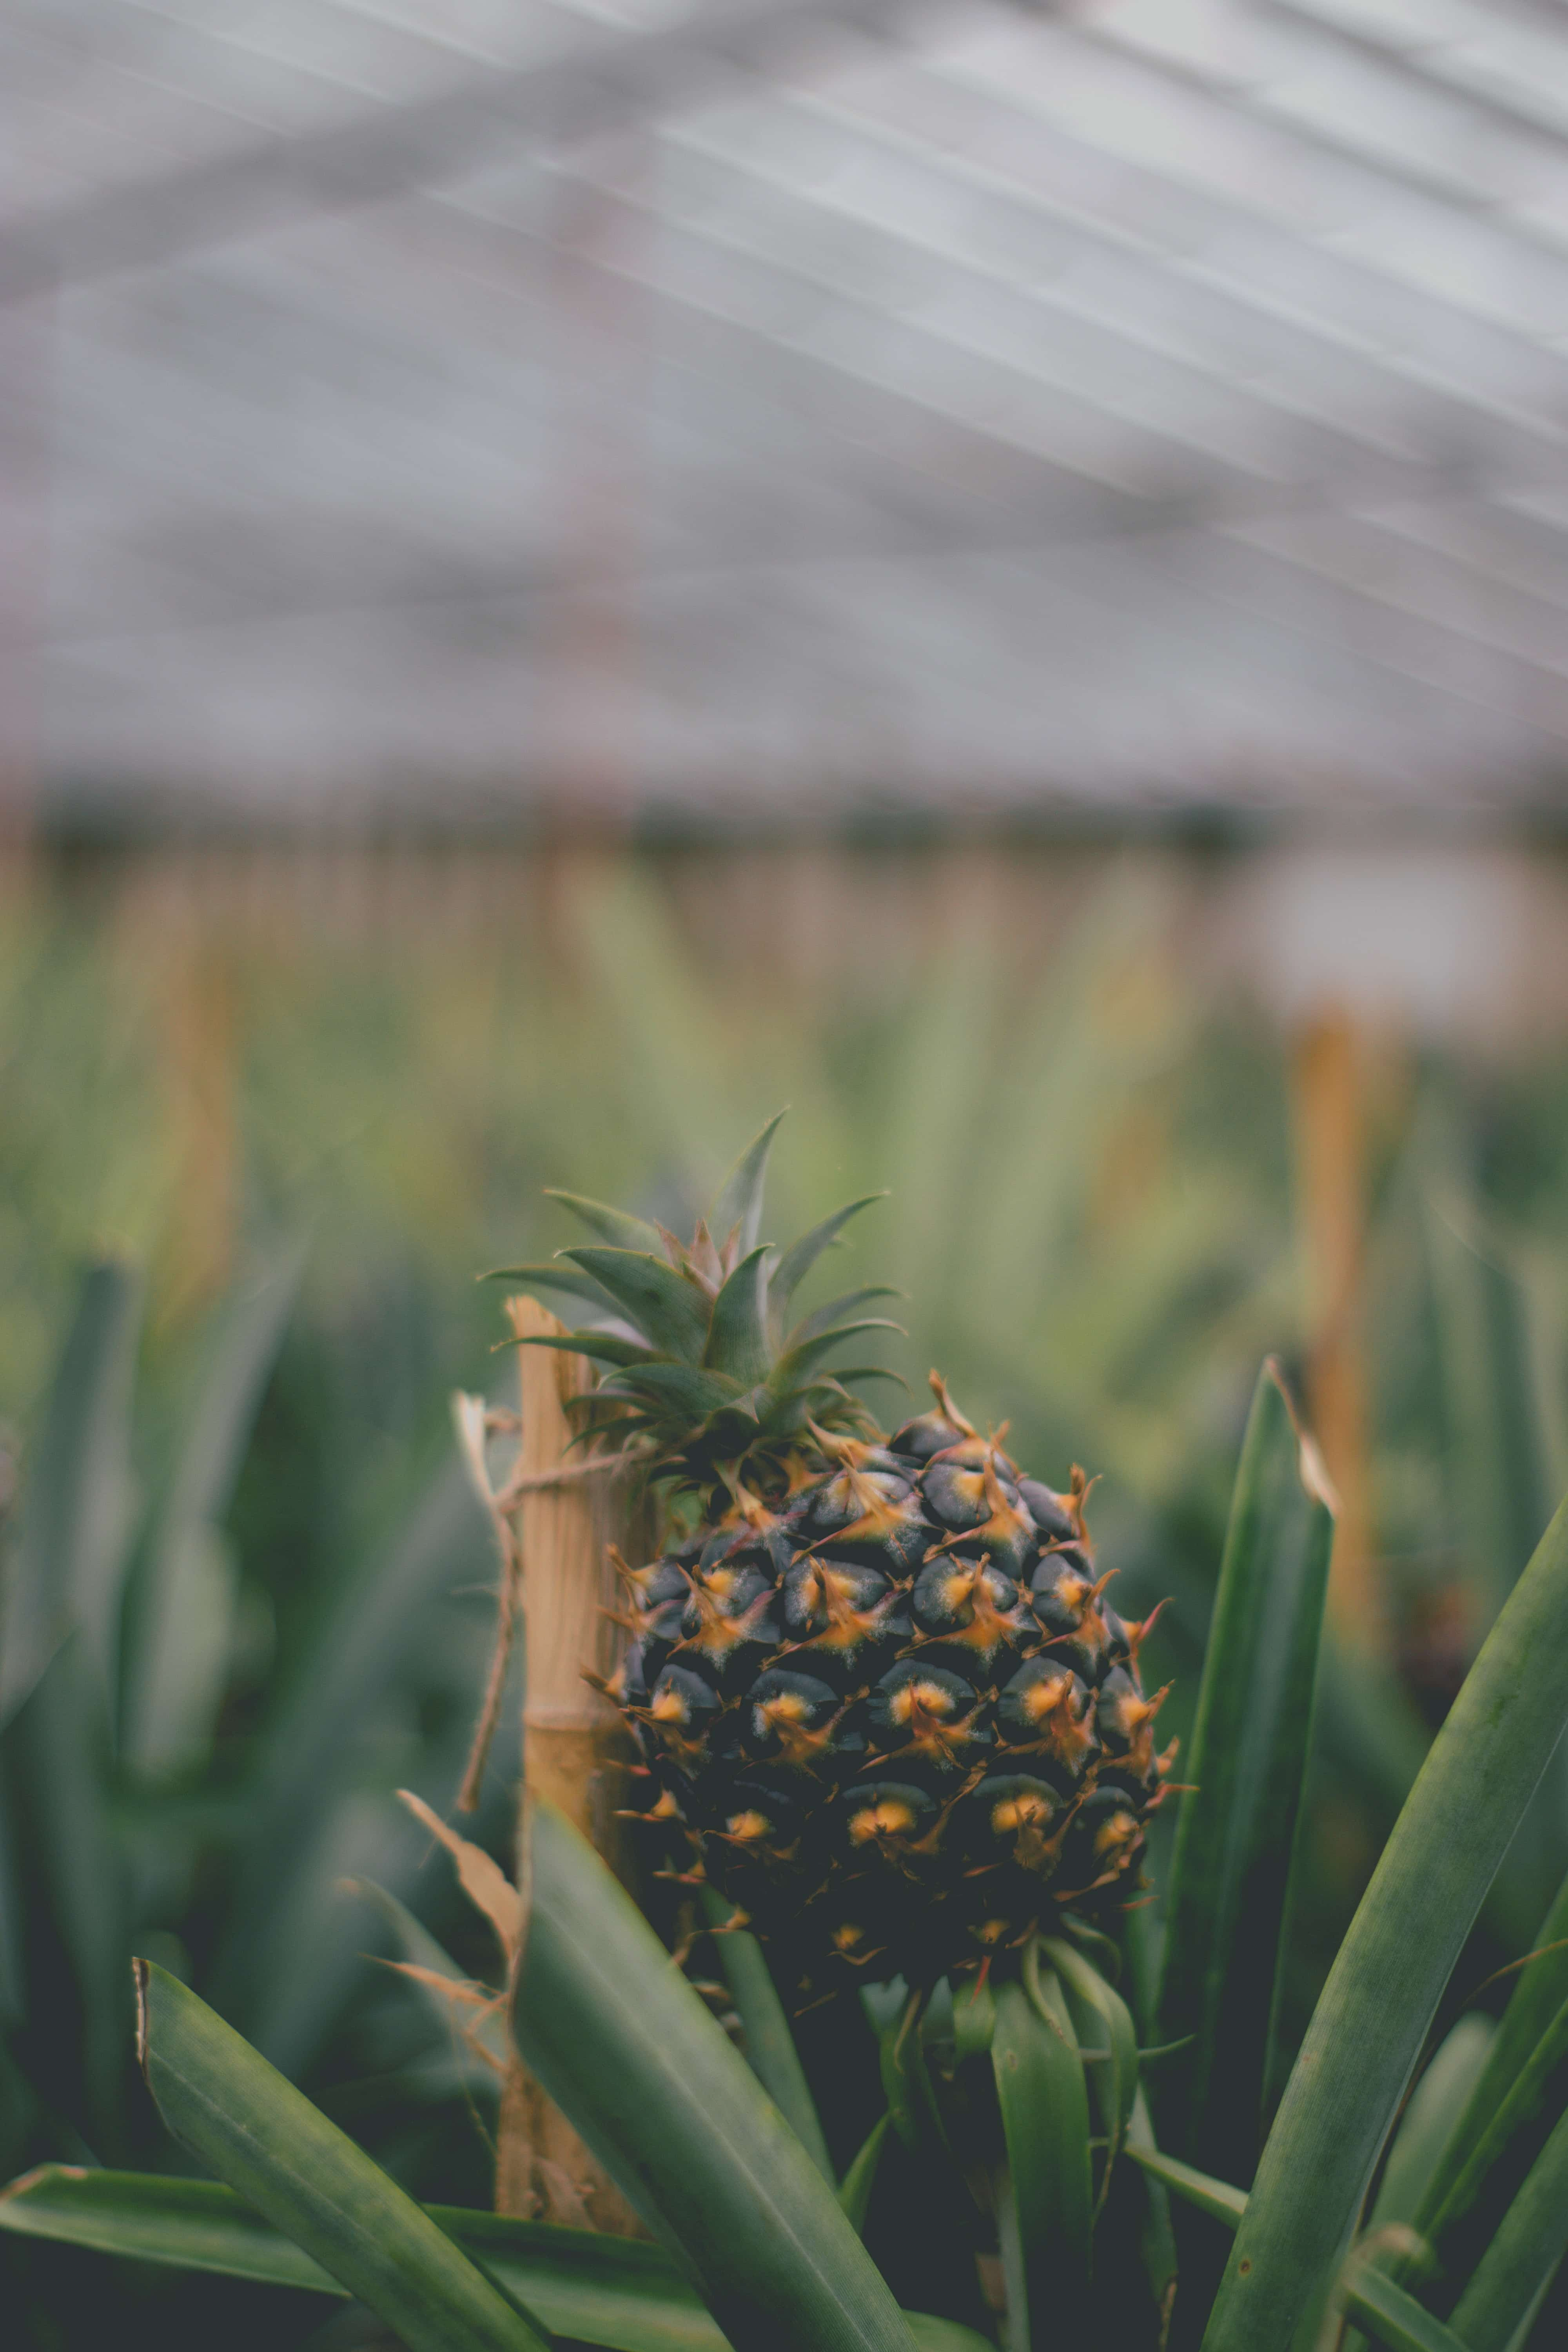 20 Unmissable Things To Do On São Miguel Island, Azores - Sao Miguel Pineapple Plantation In Ponta Delgada